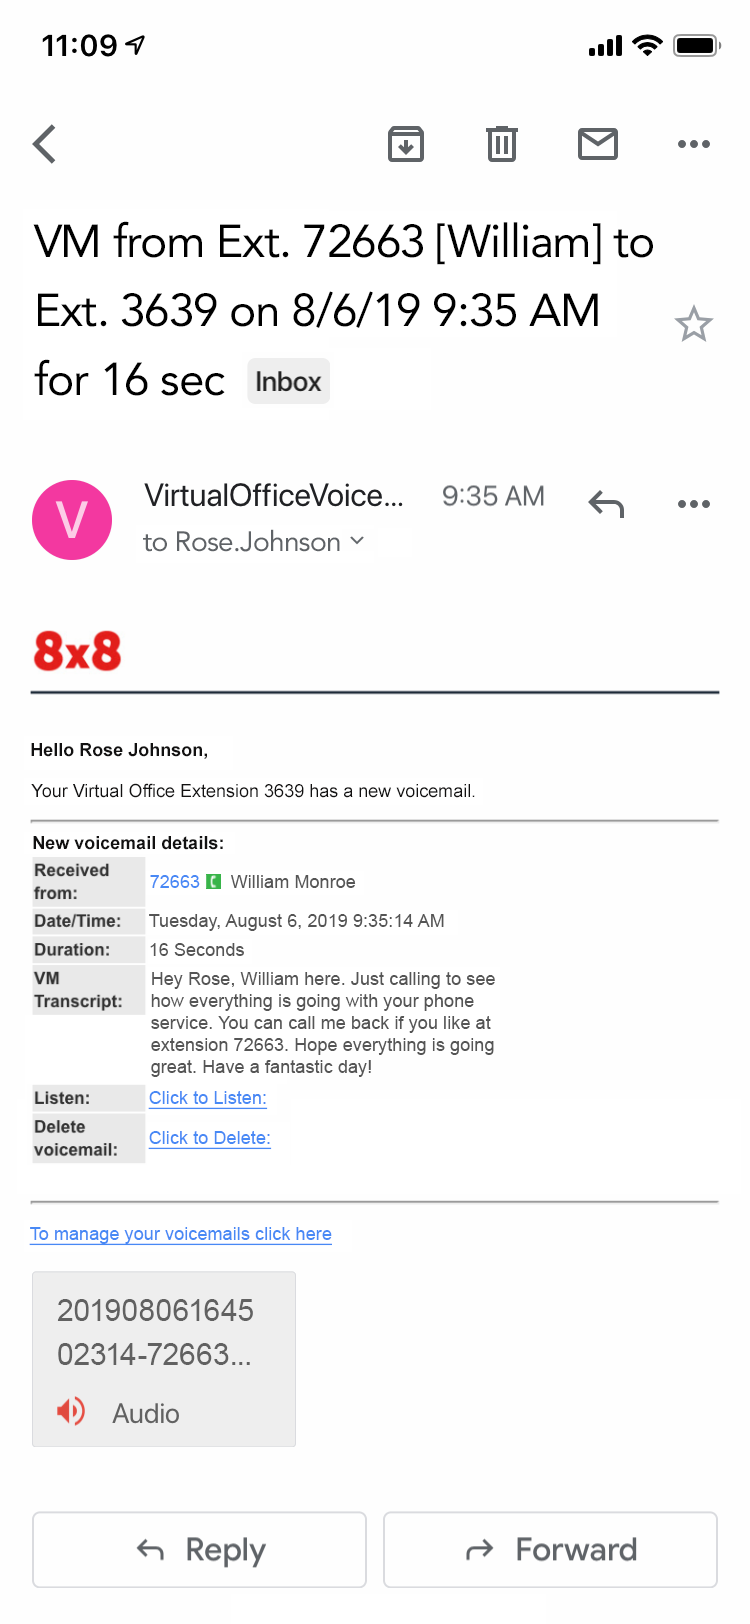 voicemail-to-email-example-mobile-8x8